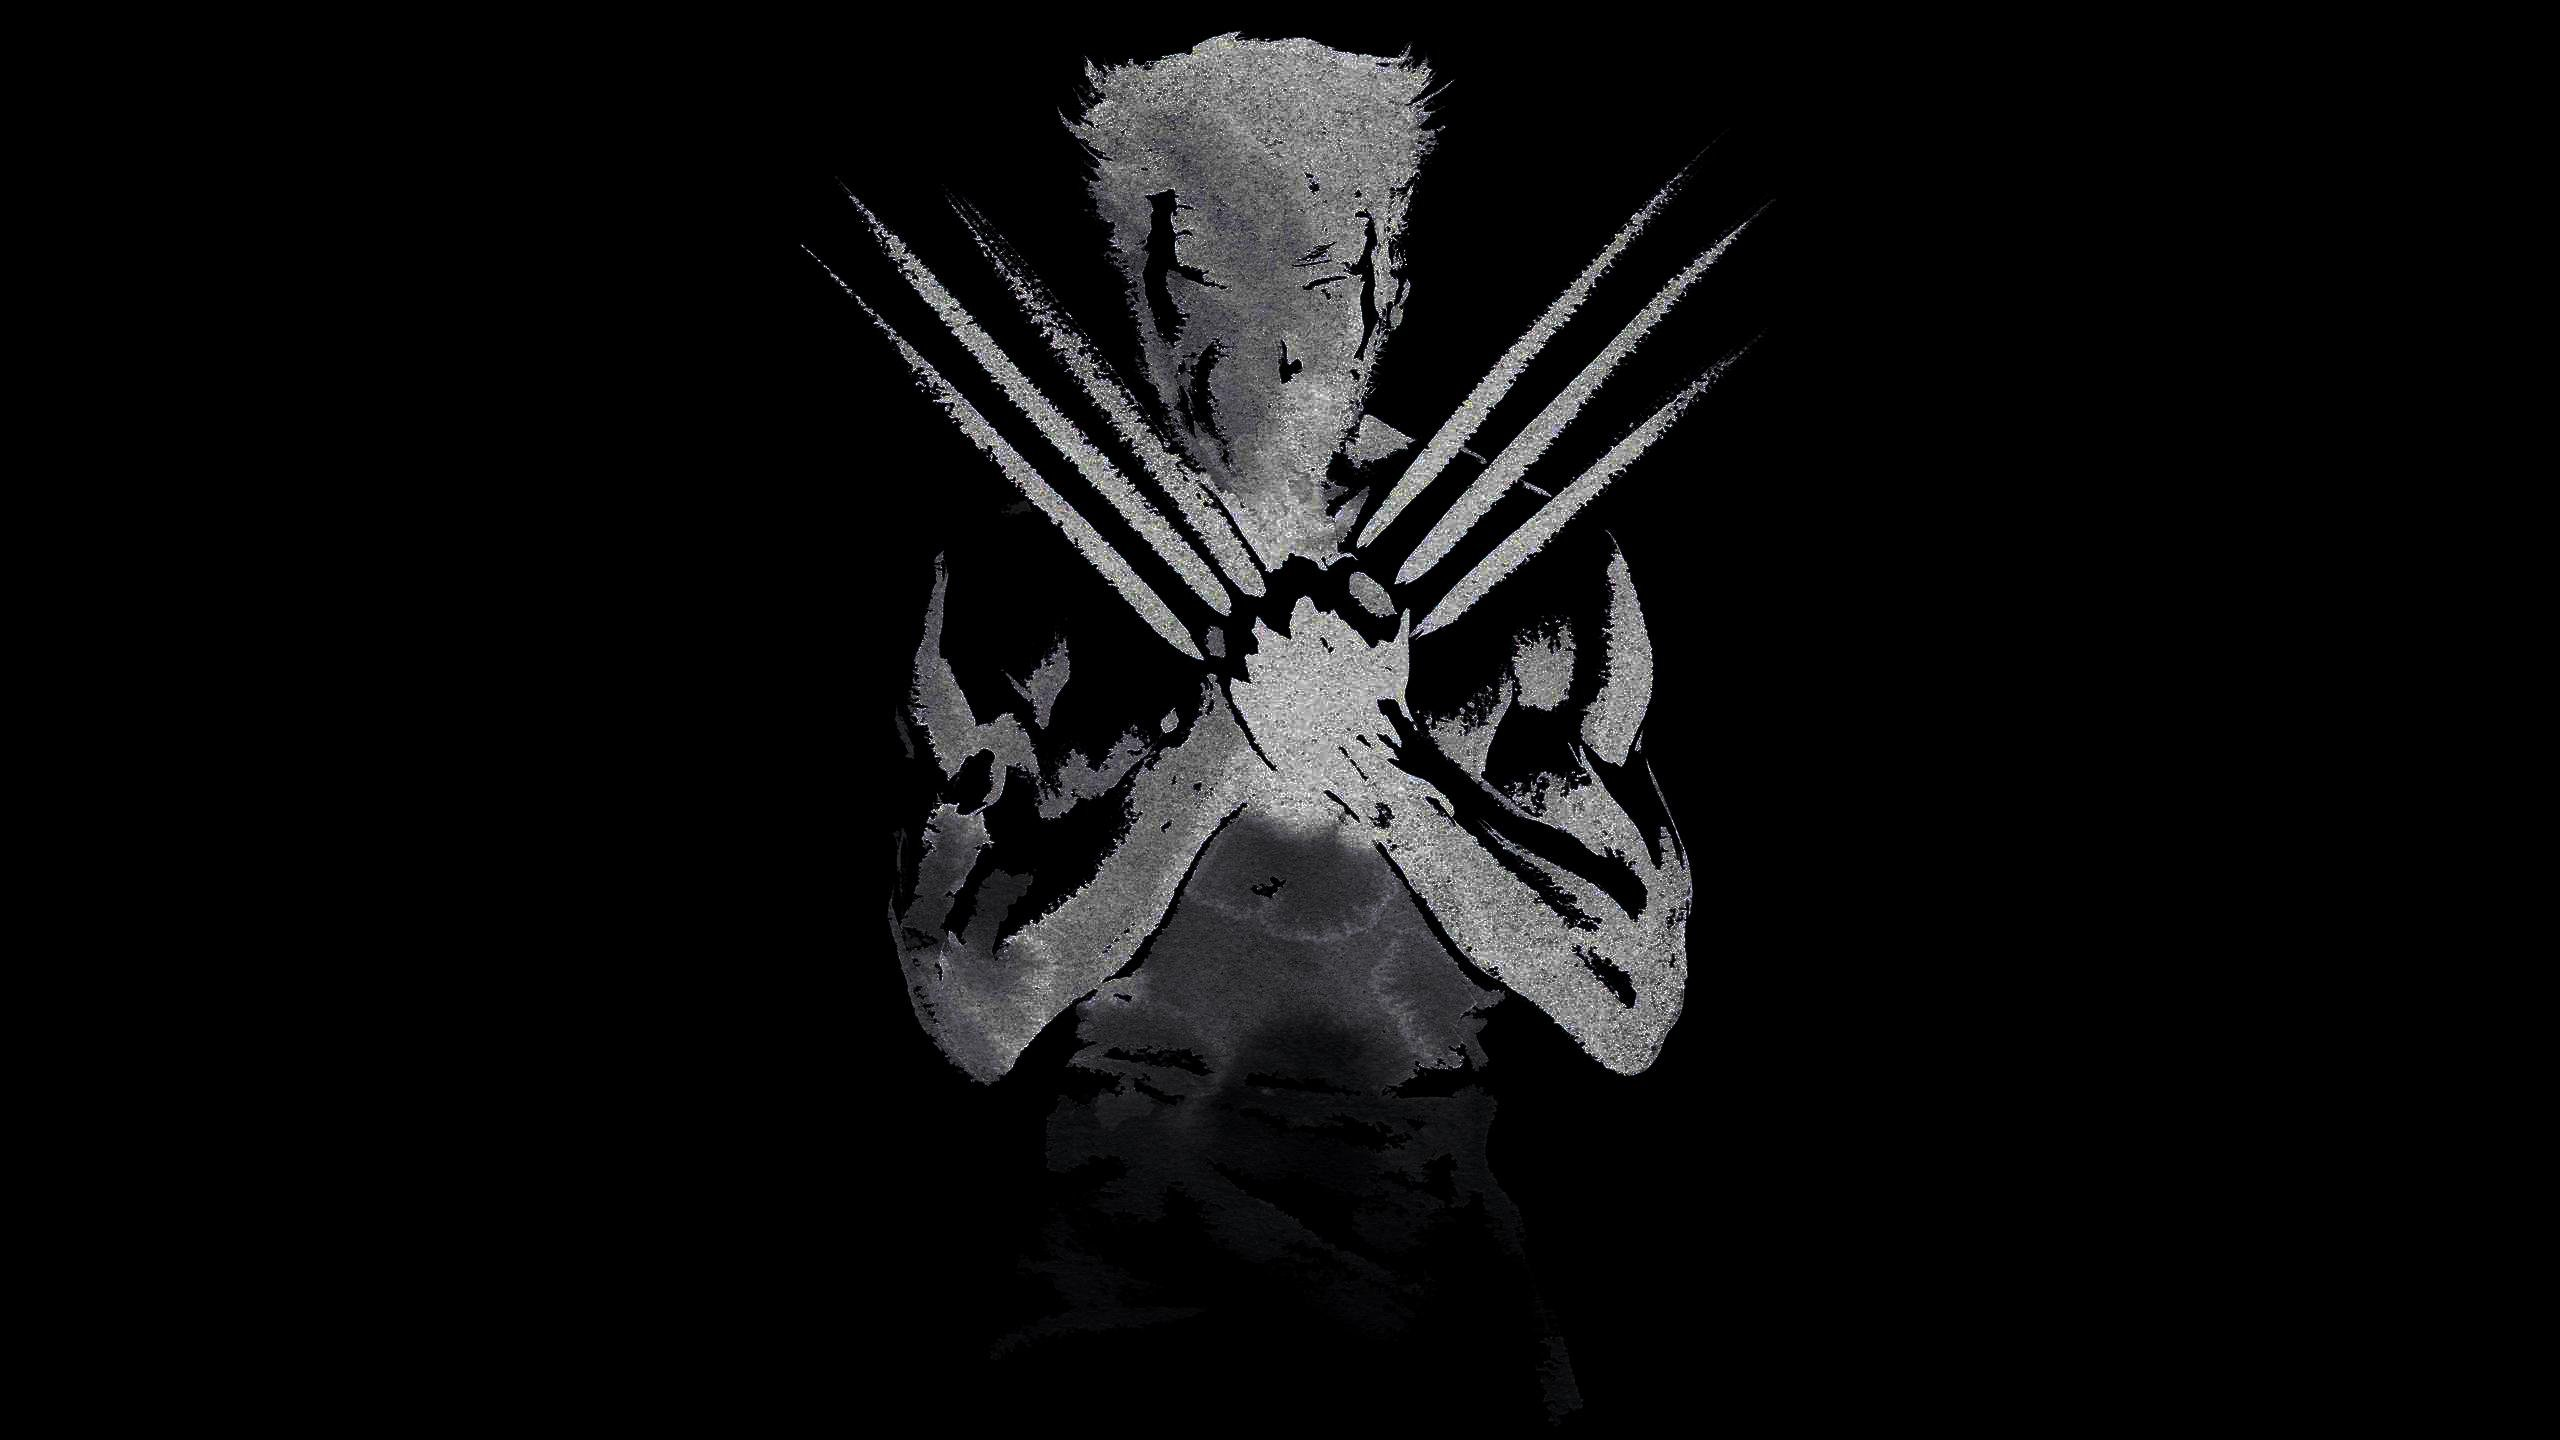 Wolverine Wallpapers, Photos And Desktop Backgrounds Up To